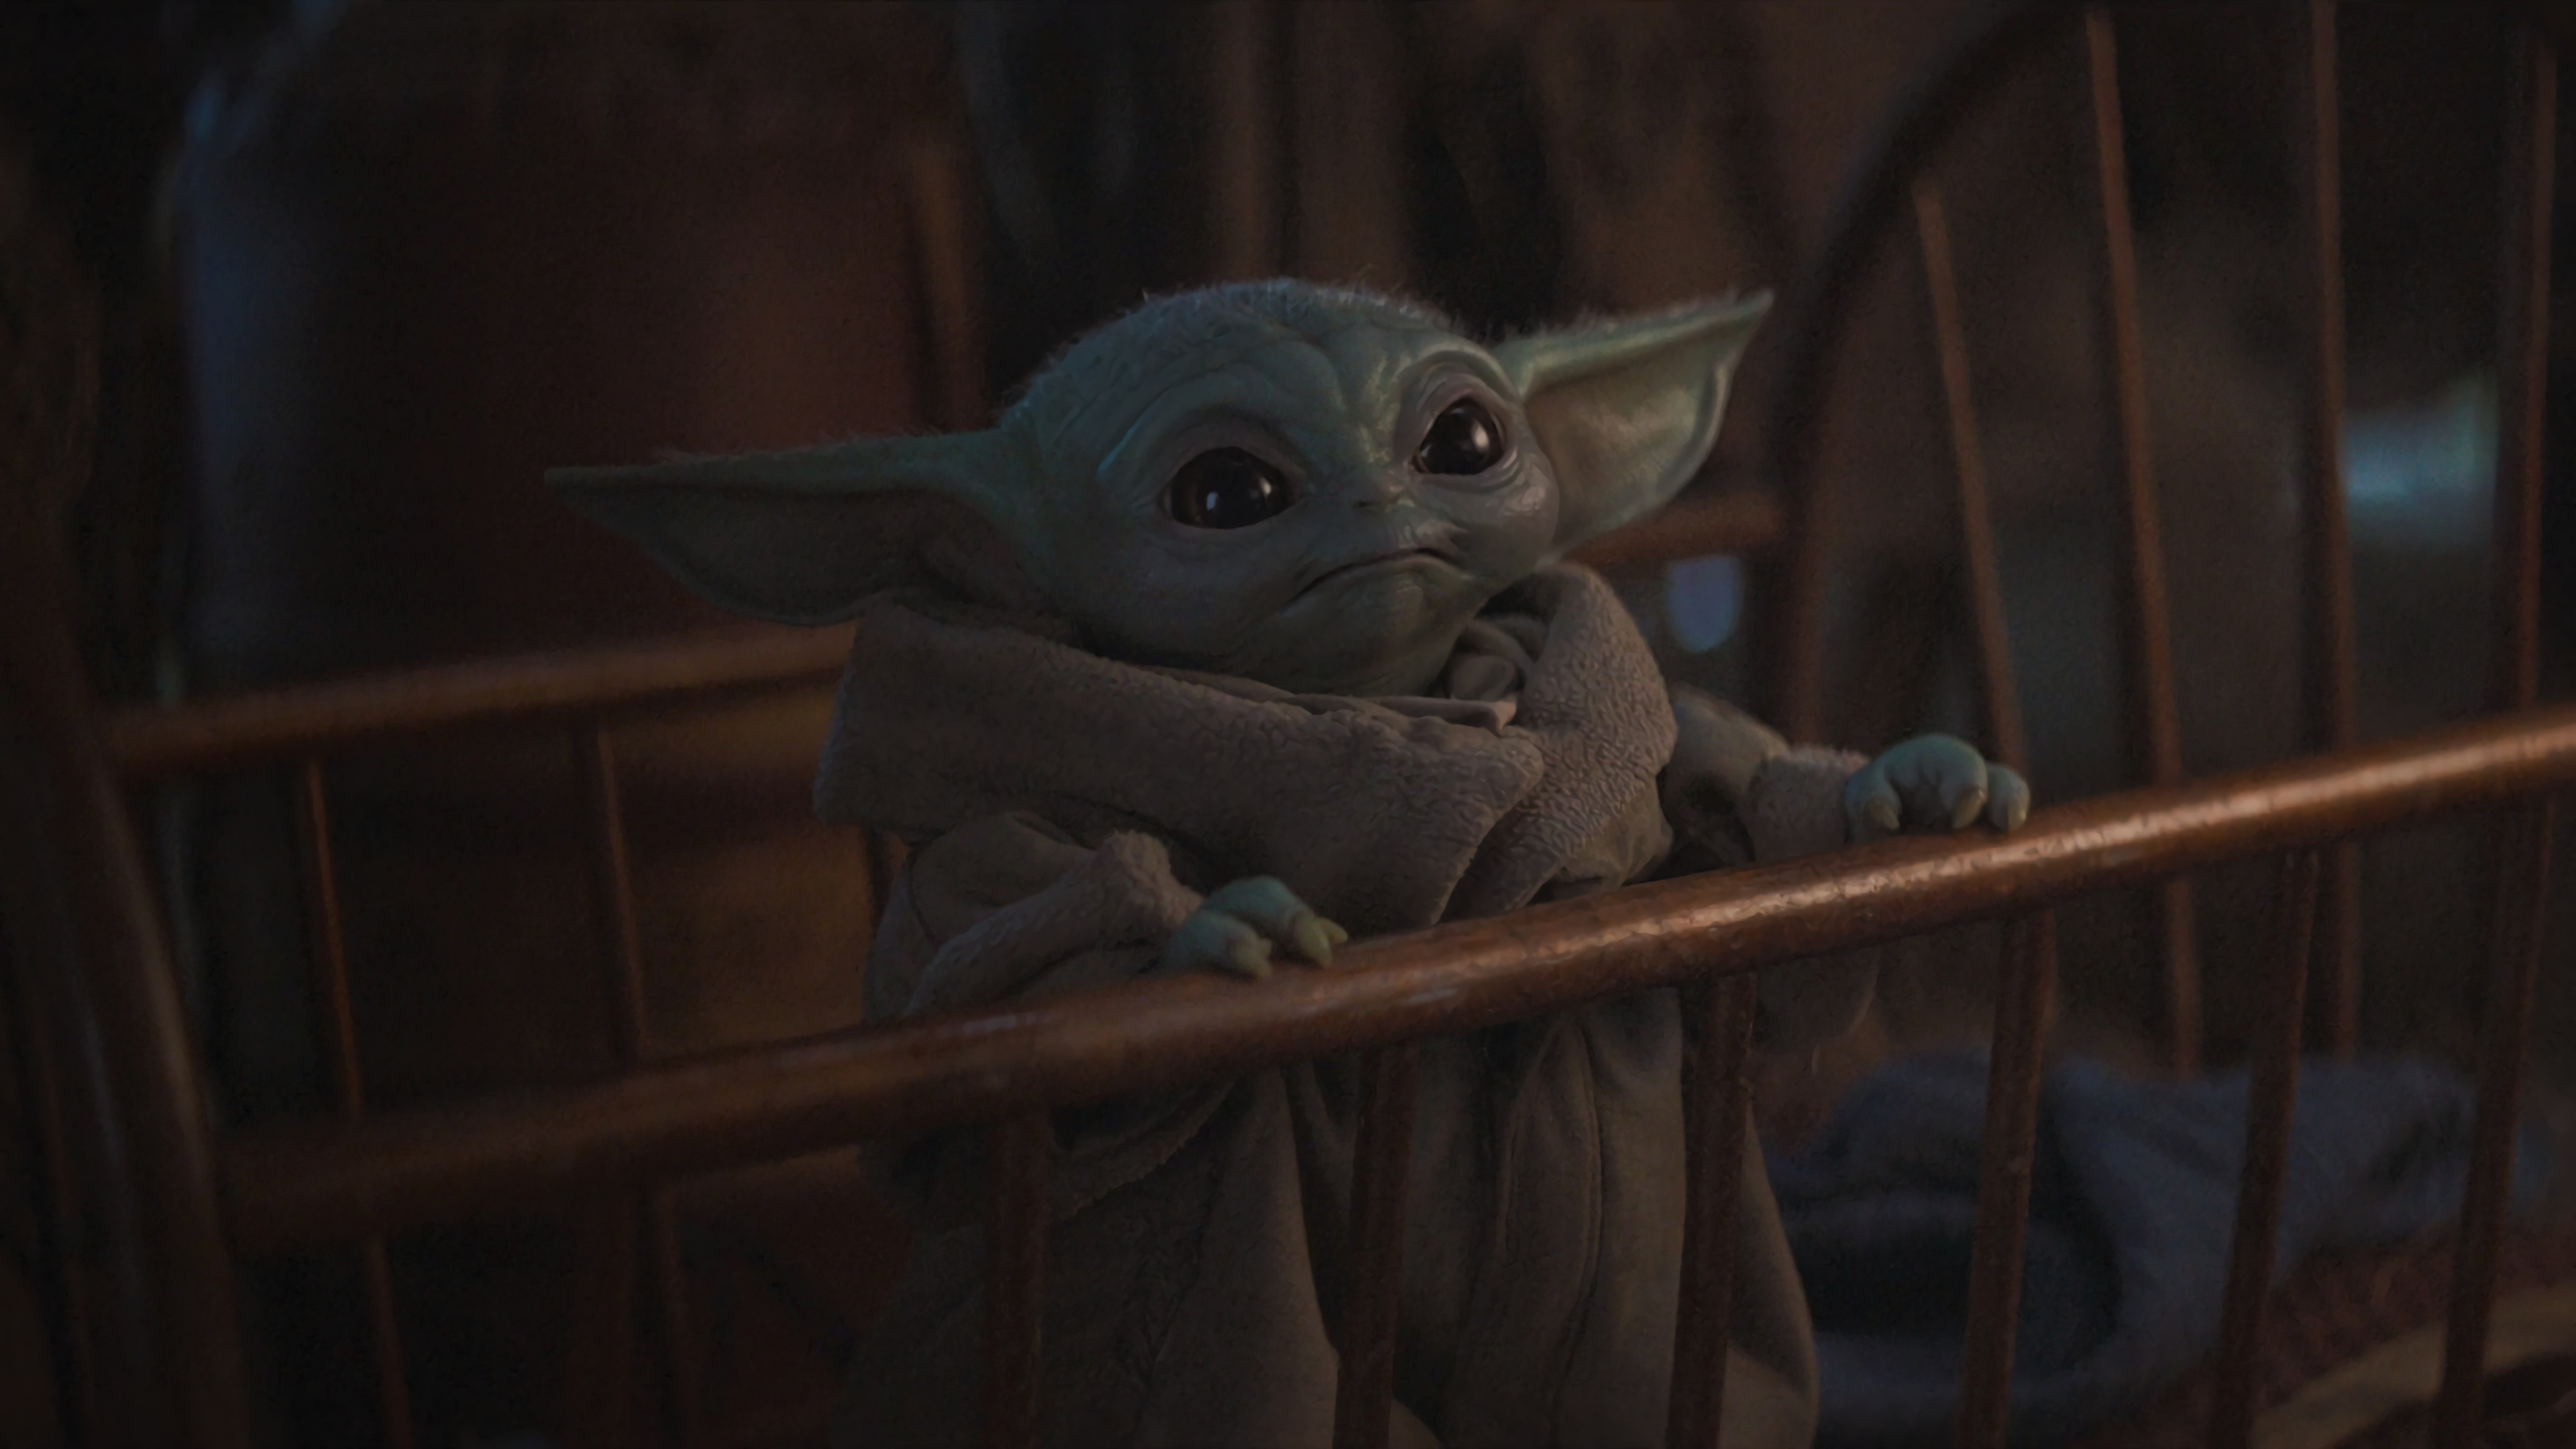 Cute Baby Yoda From Mandalorian Wallpaper Hd Tv Series 4k Wallpapers Images Photos And Background